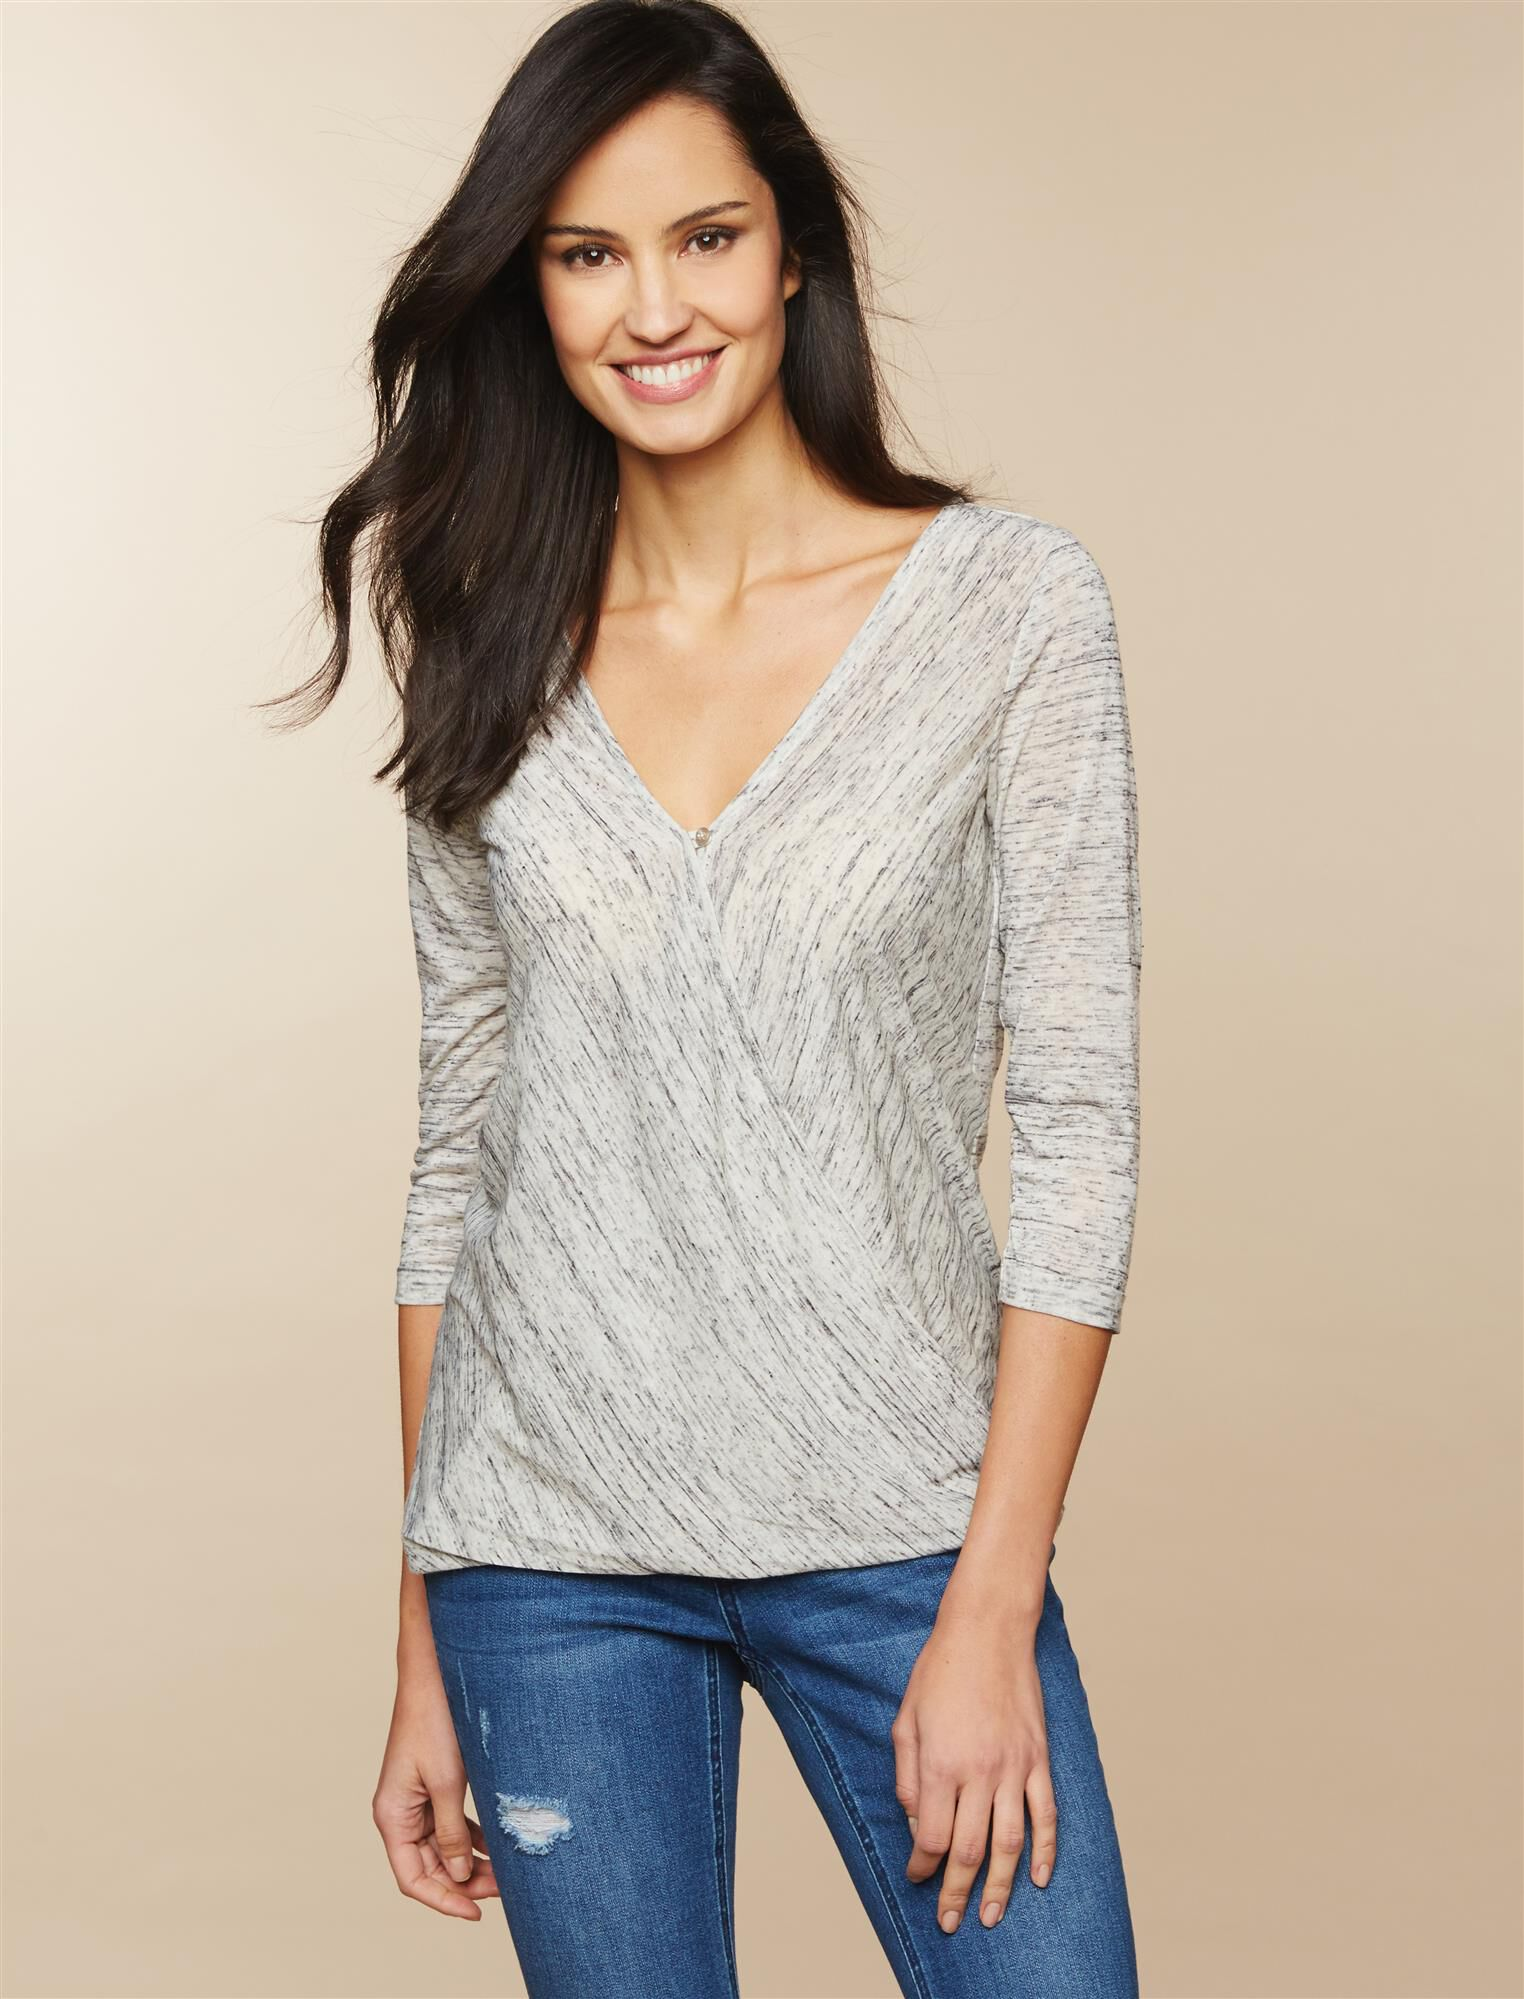 Jessica Simpson Pull Over Wrap Nursing Top